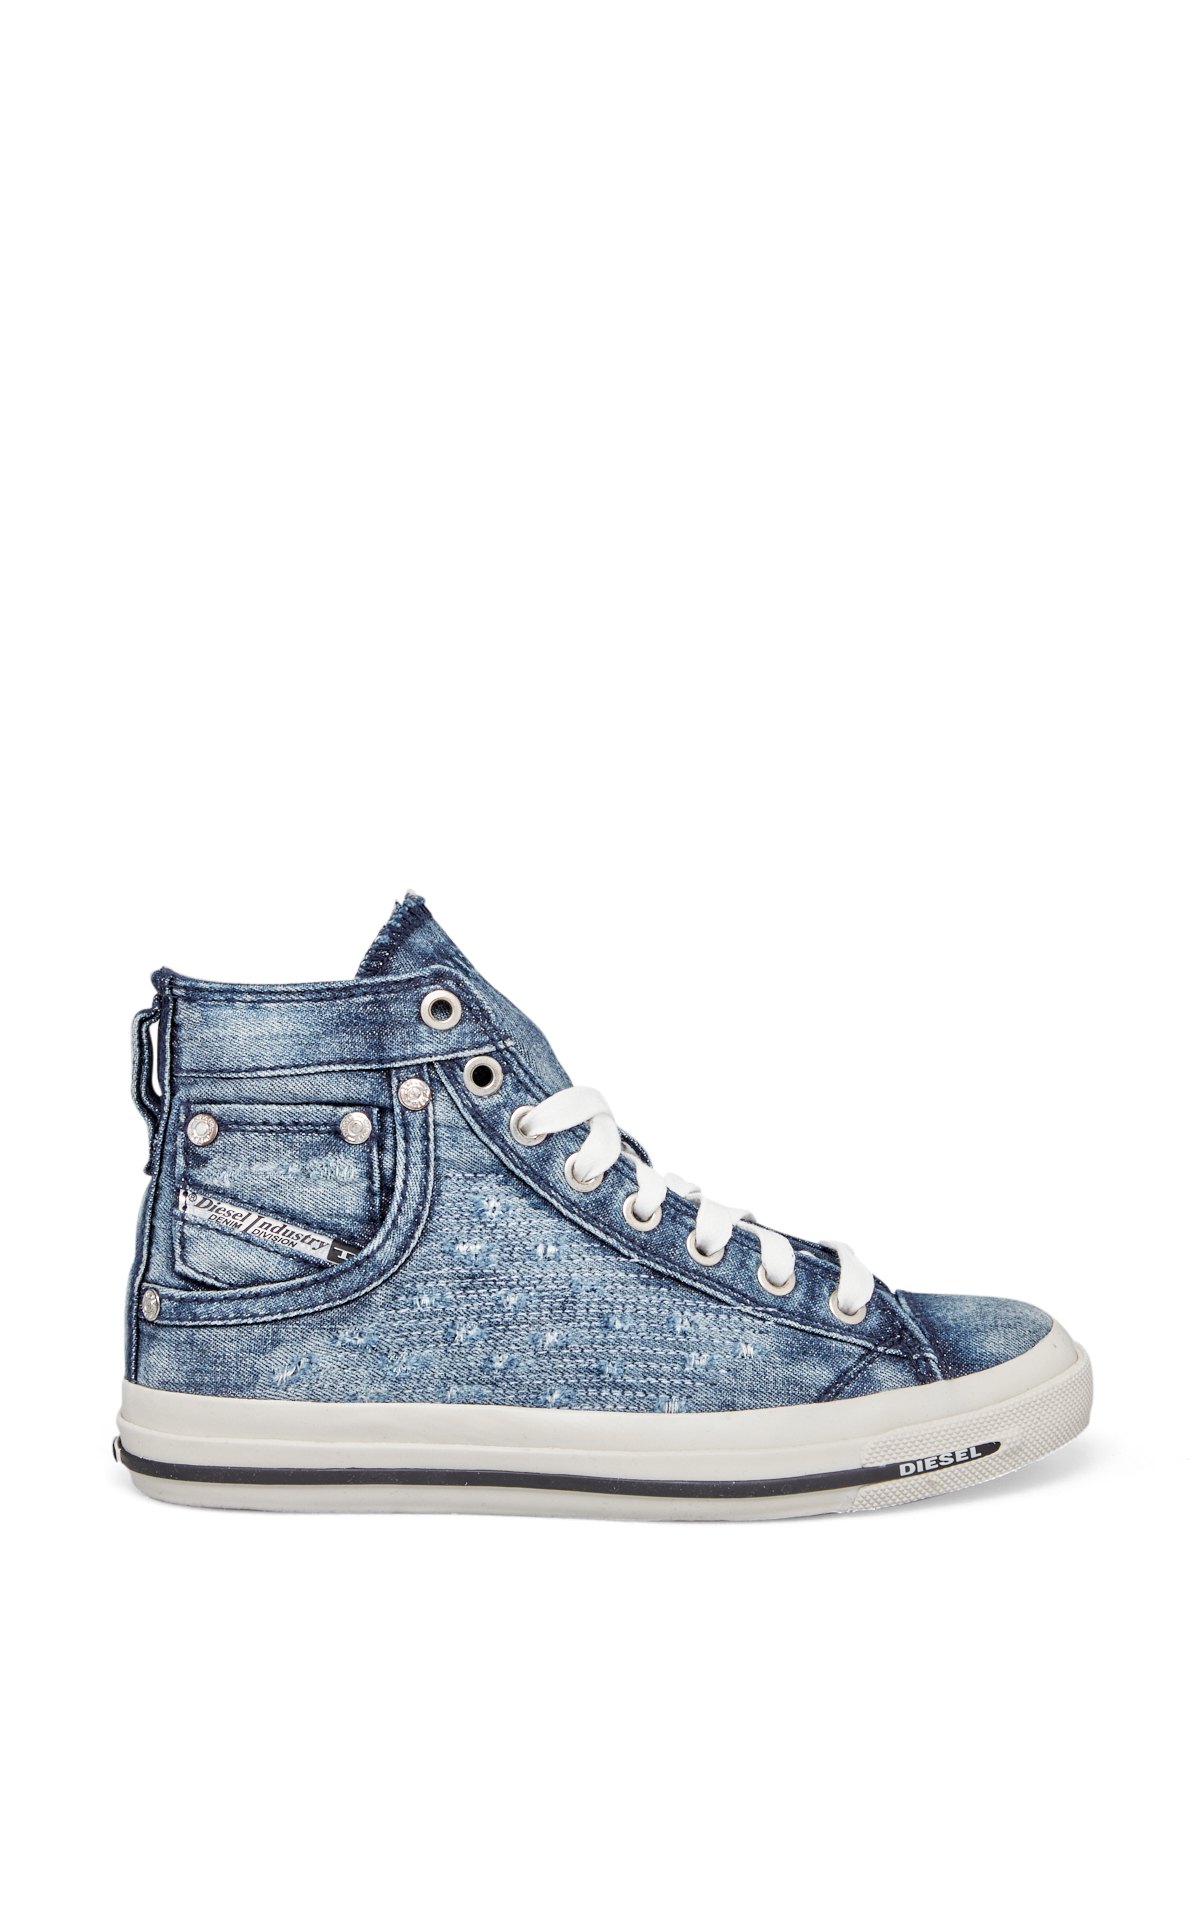 Diesel Baskets Exposure en denim*